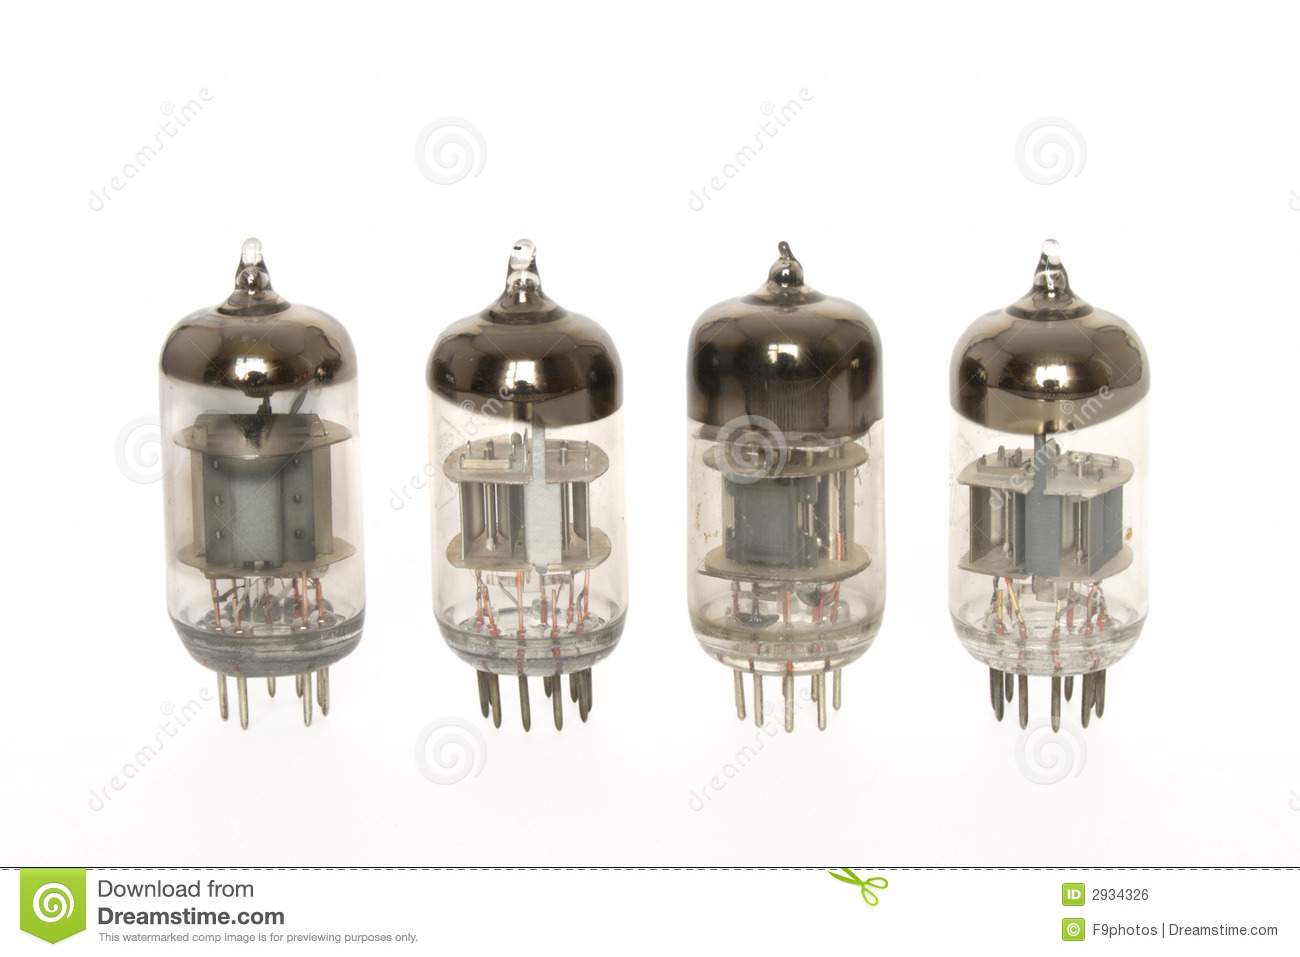 Alarms And Security Related Schematics additionally 3 Way Speaker Crossover Wiring Diagram Also likewise Tesla Coil Circuit Diagram Additionally Schematic besides 976308 also Royalty Free Stock Image Old Vacuum Tubes Image2934326. on free tube radio plans